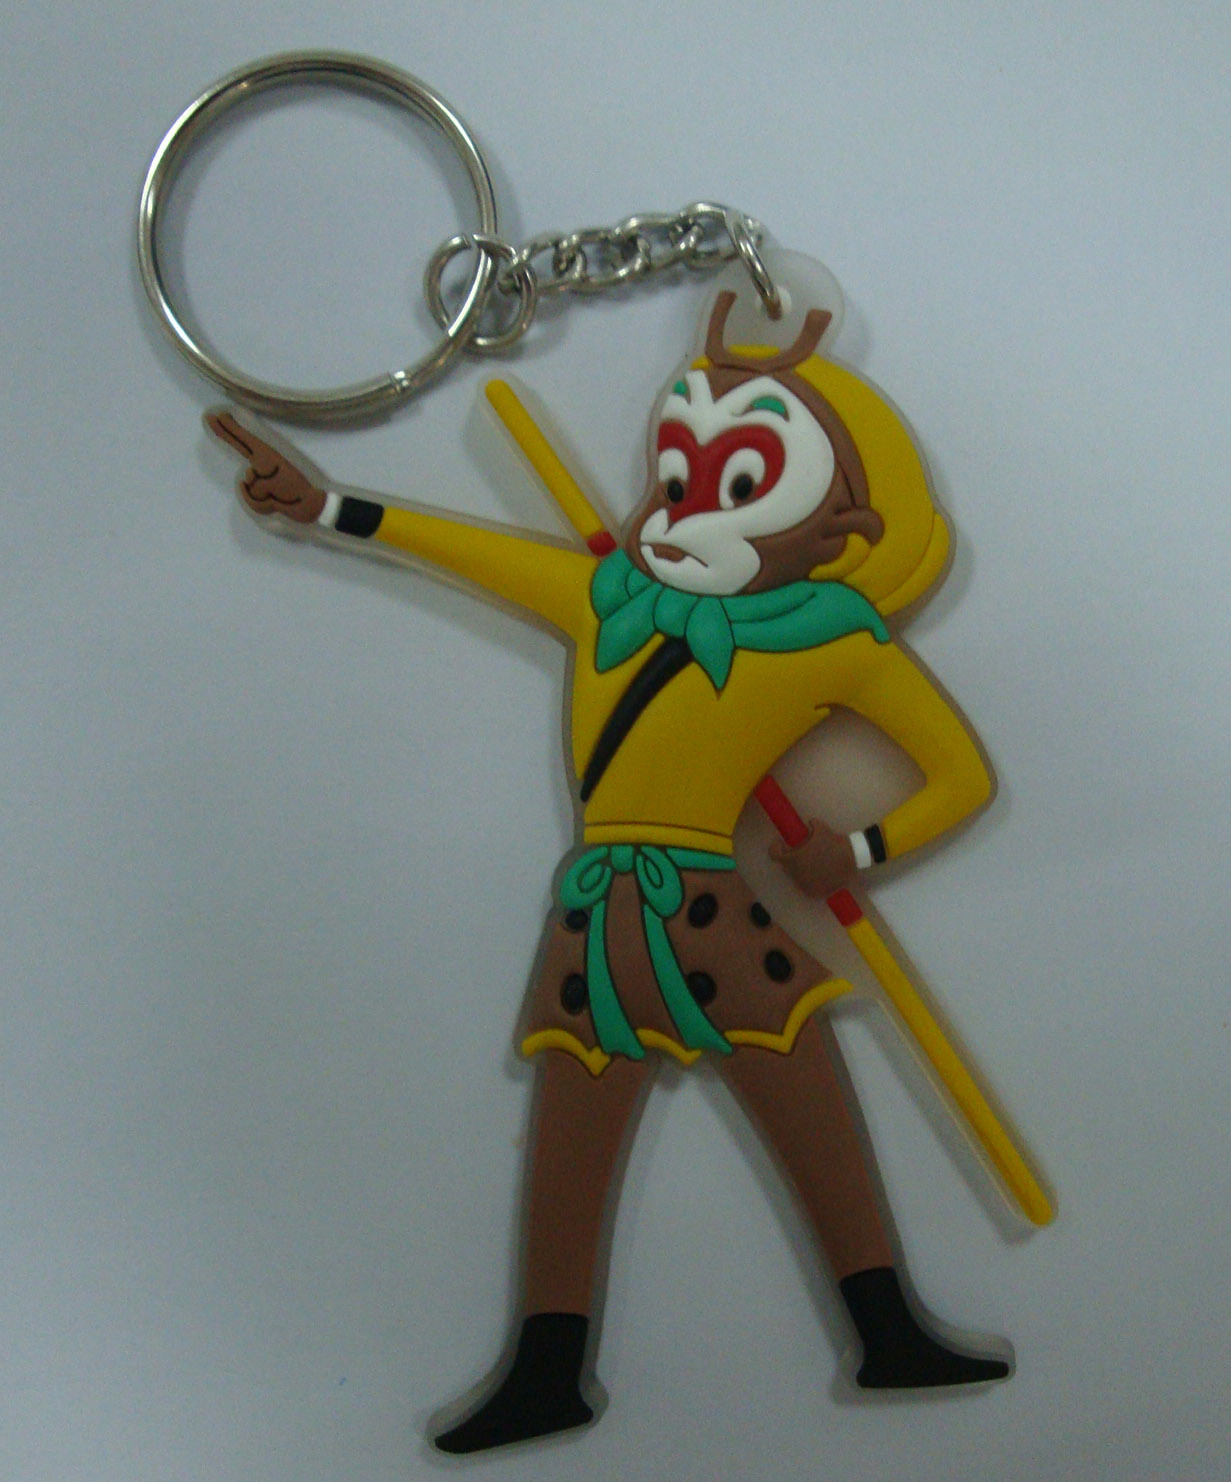 Monkey King Cartoon http://cnhehui.en.made-in-china.com/product/xqLnzUuDRHWY/China-Monkey-King-Cartoons-Key-Ring-CNHH-KC-MOKEY01-.html